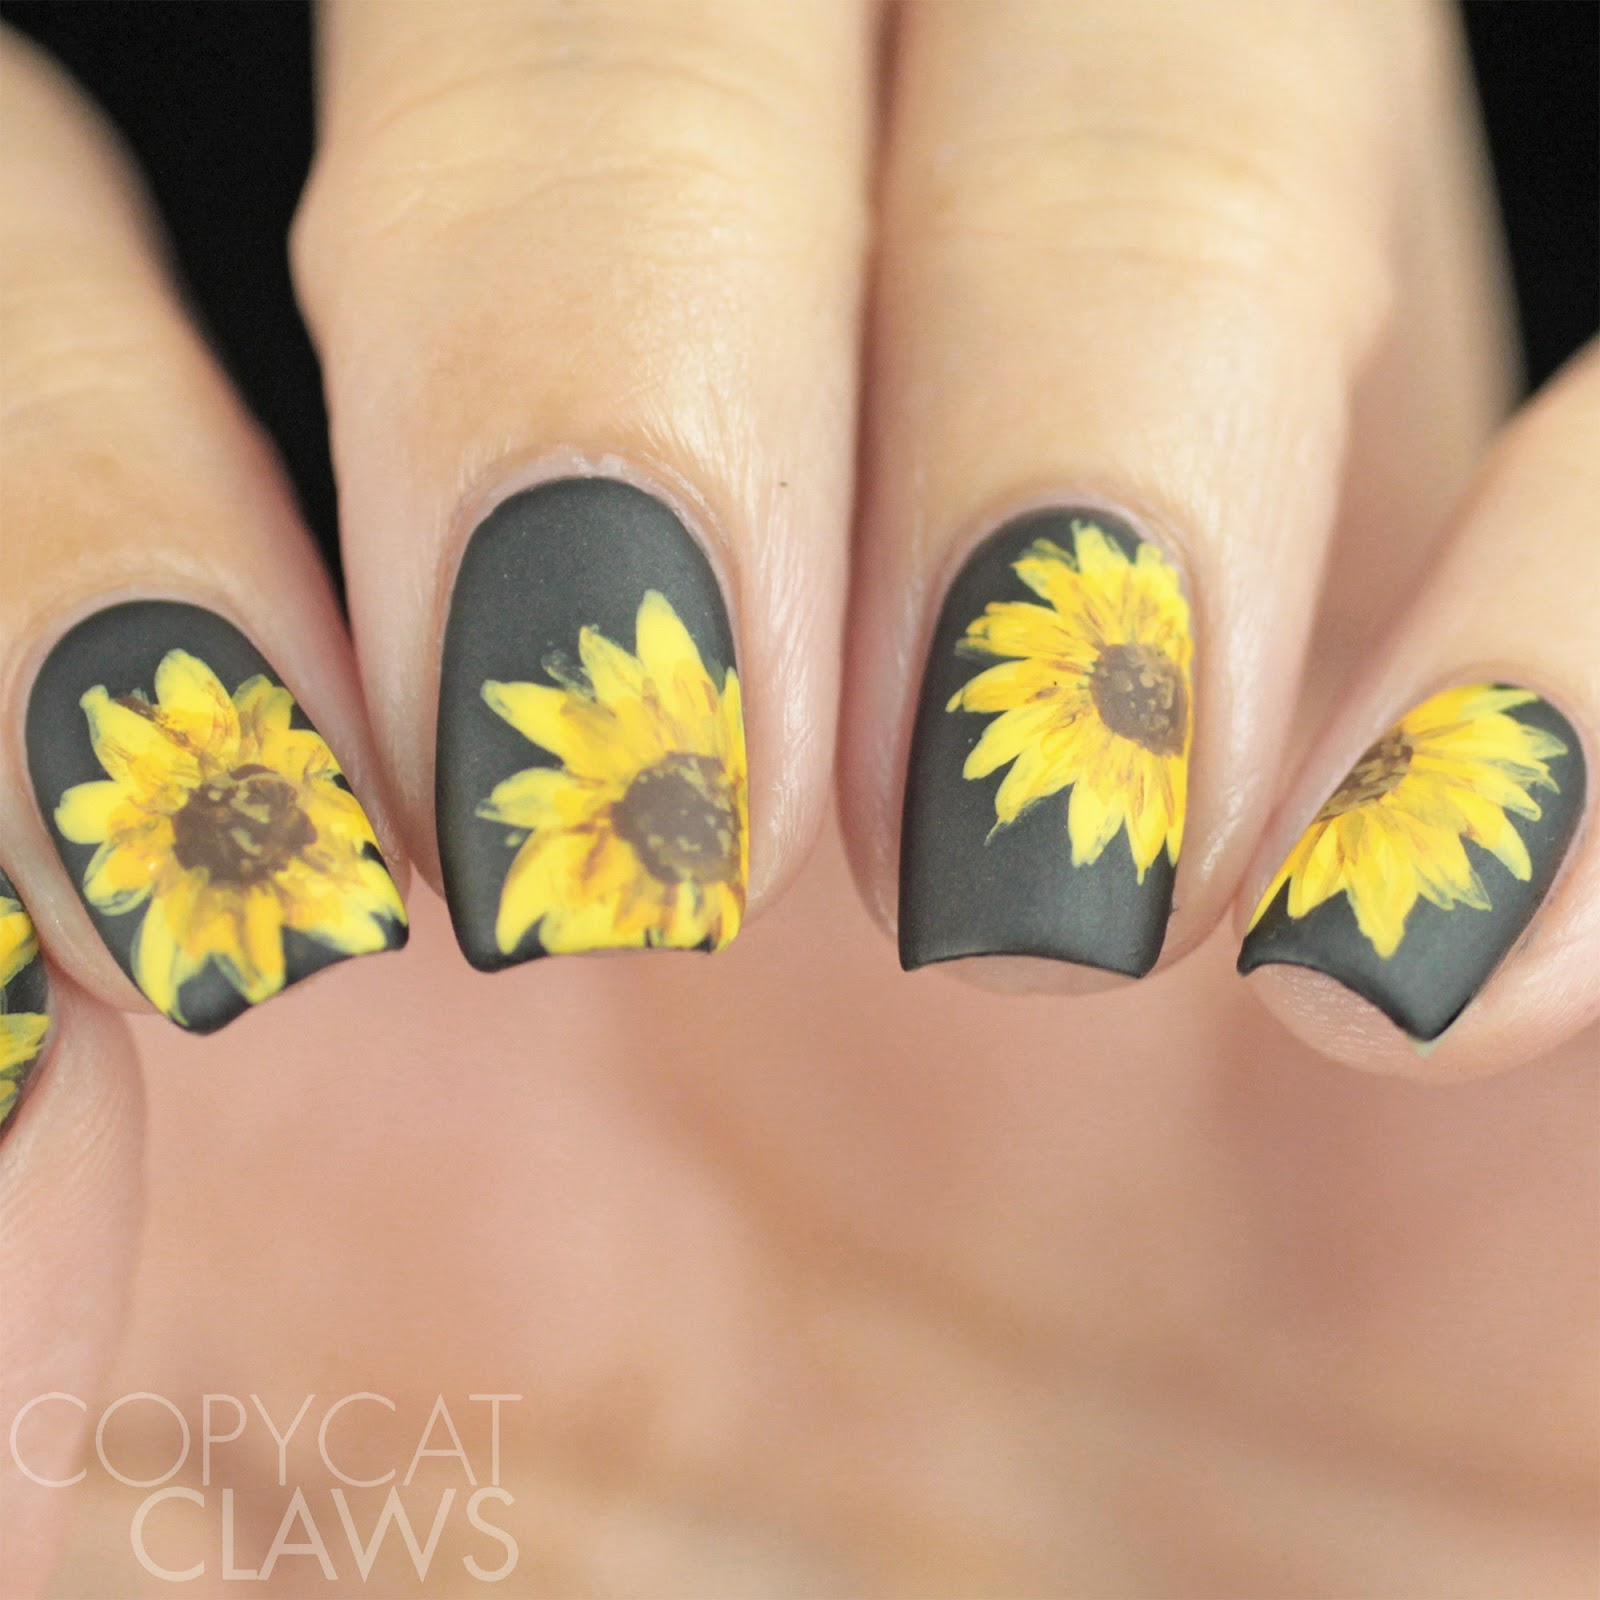 17 Floral Nail Art Ideas Perfect for Fall - Style Motivation